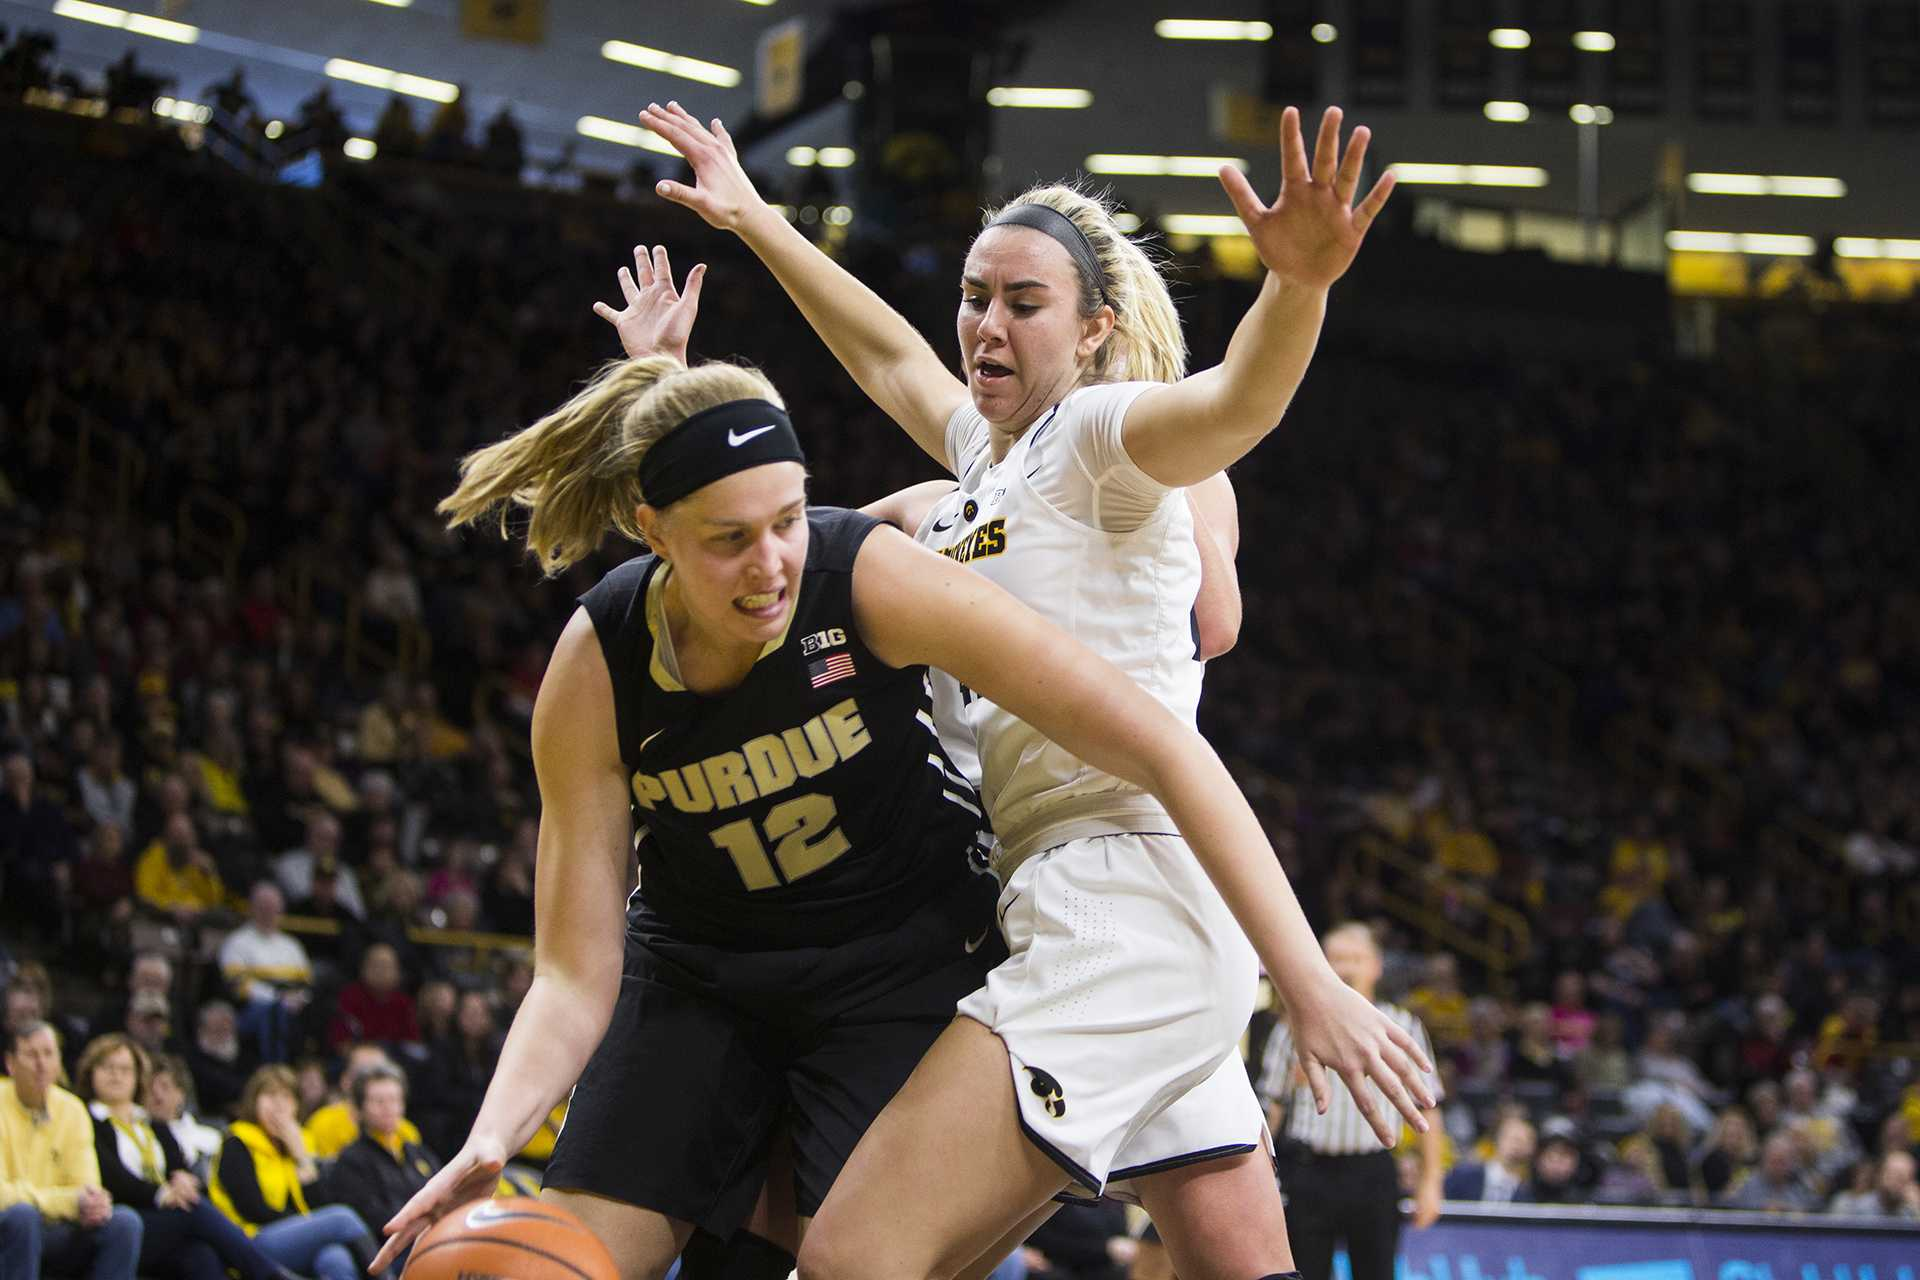 Purdue center Nora Kiesler dribbles past Iowa forward Hannah Stewart during an Iowa/Purdue women's basketball game in Carver-Hawkeye Arena on Saturday, Jan. 13, 2018. The Boilermakers defeated the Hawkeyes, 76-70. (Joseph Cress/The Daily Iowan)